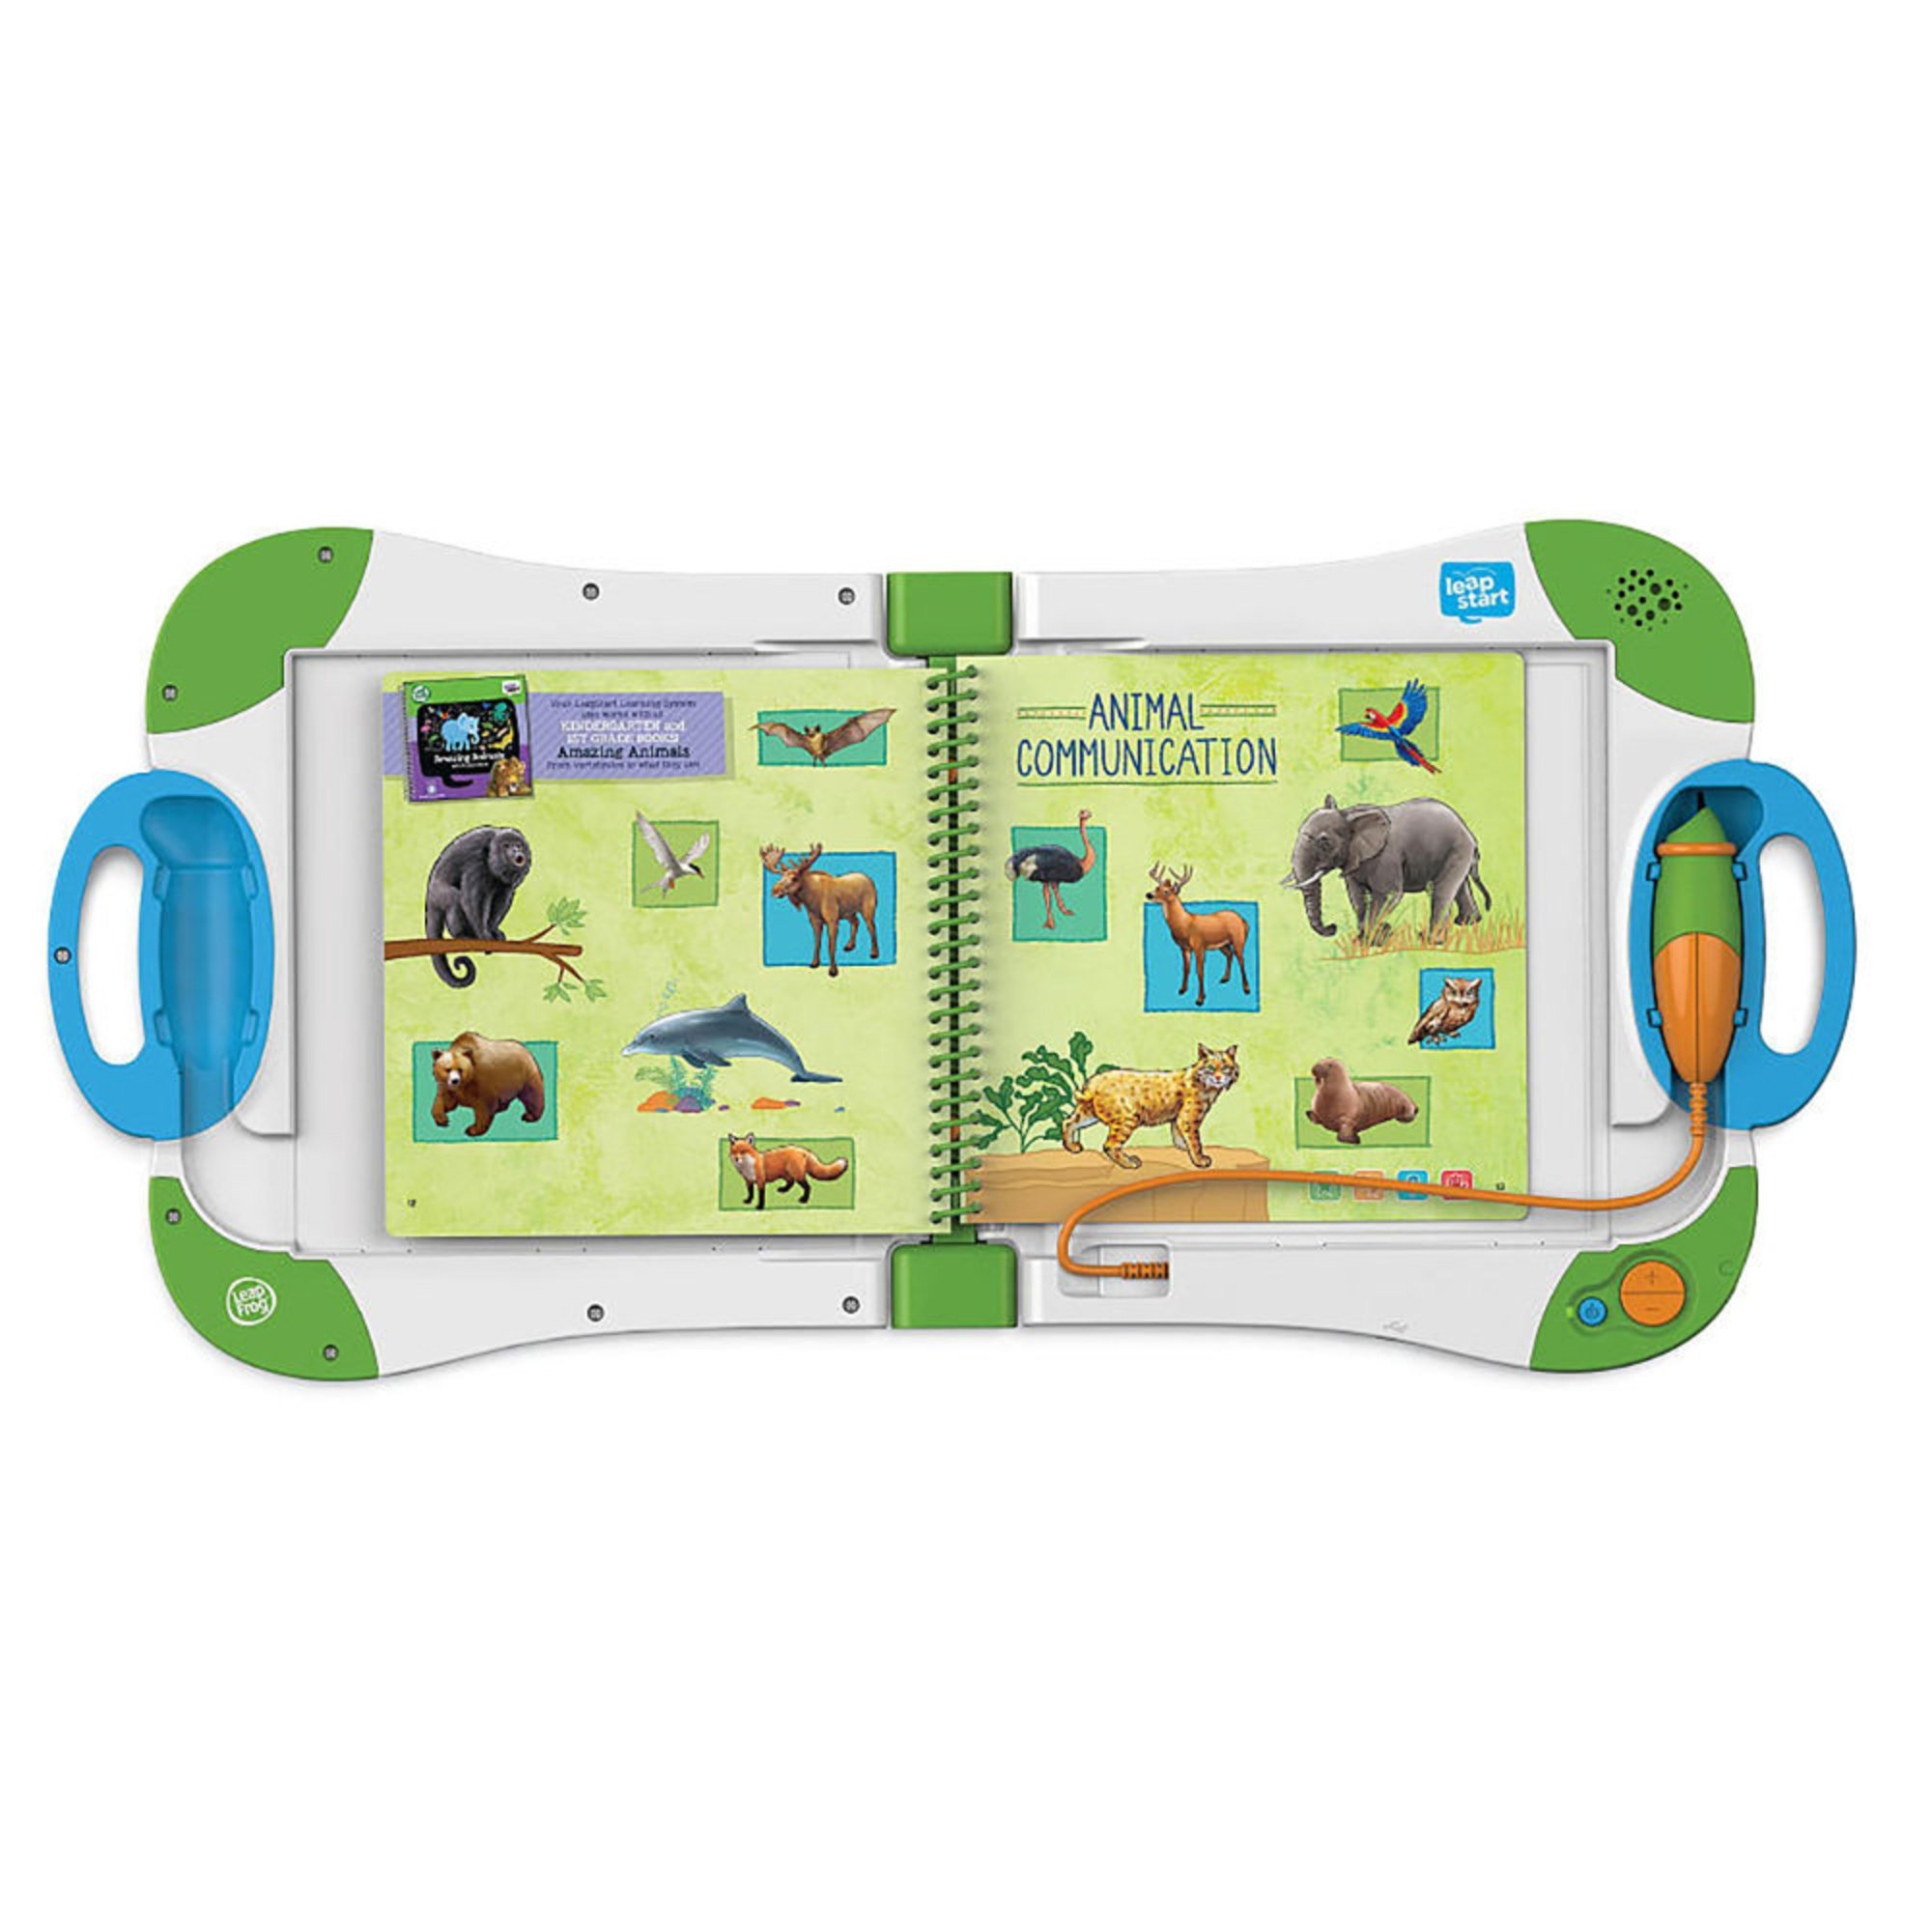 Leapstart Preschool Interactive Learning System Early